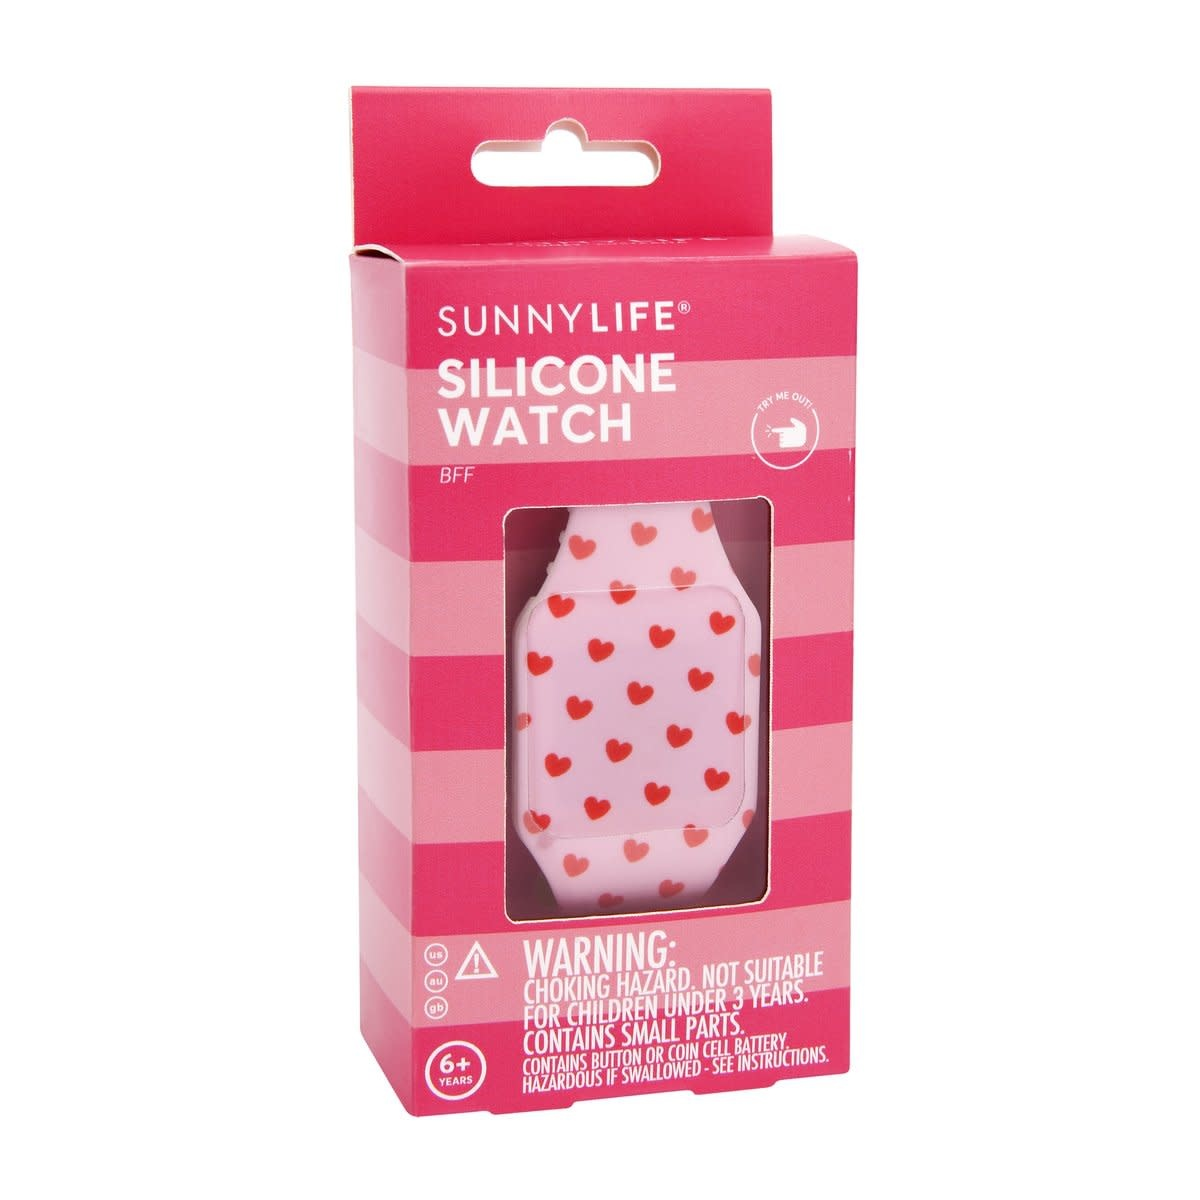 Sunny Life Kids Silicone Watch BFF